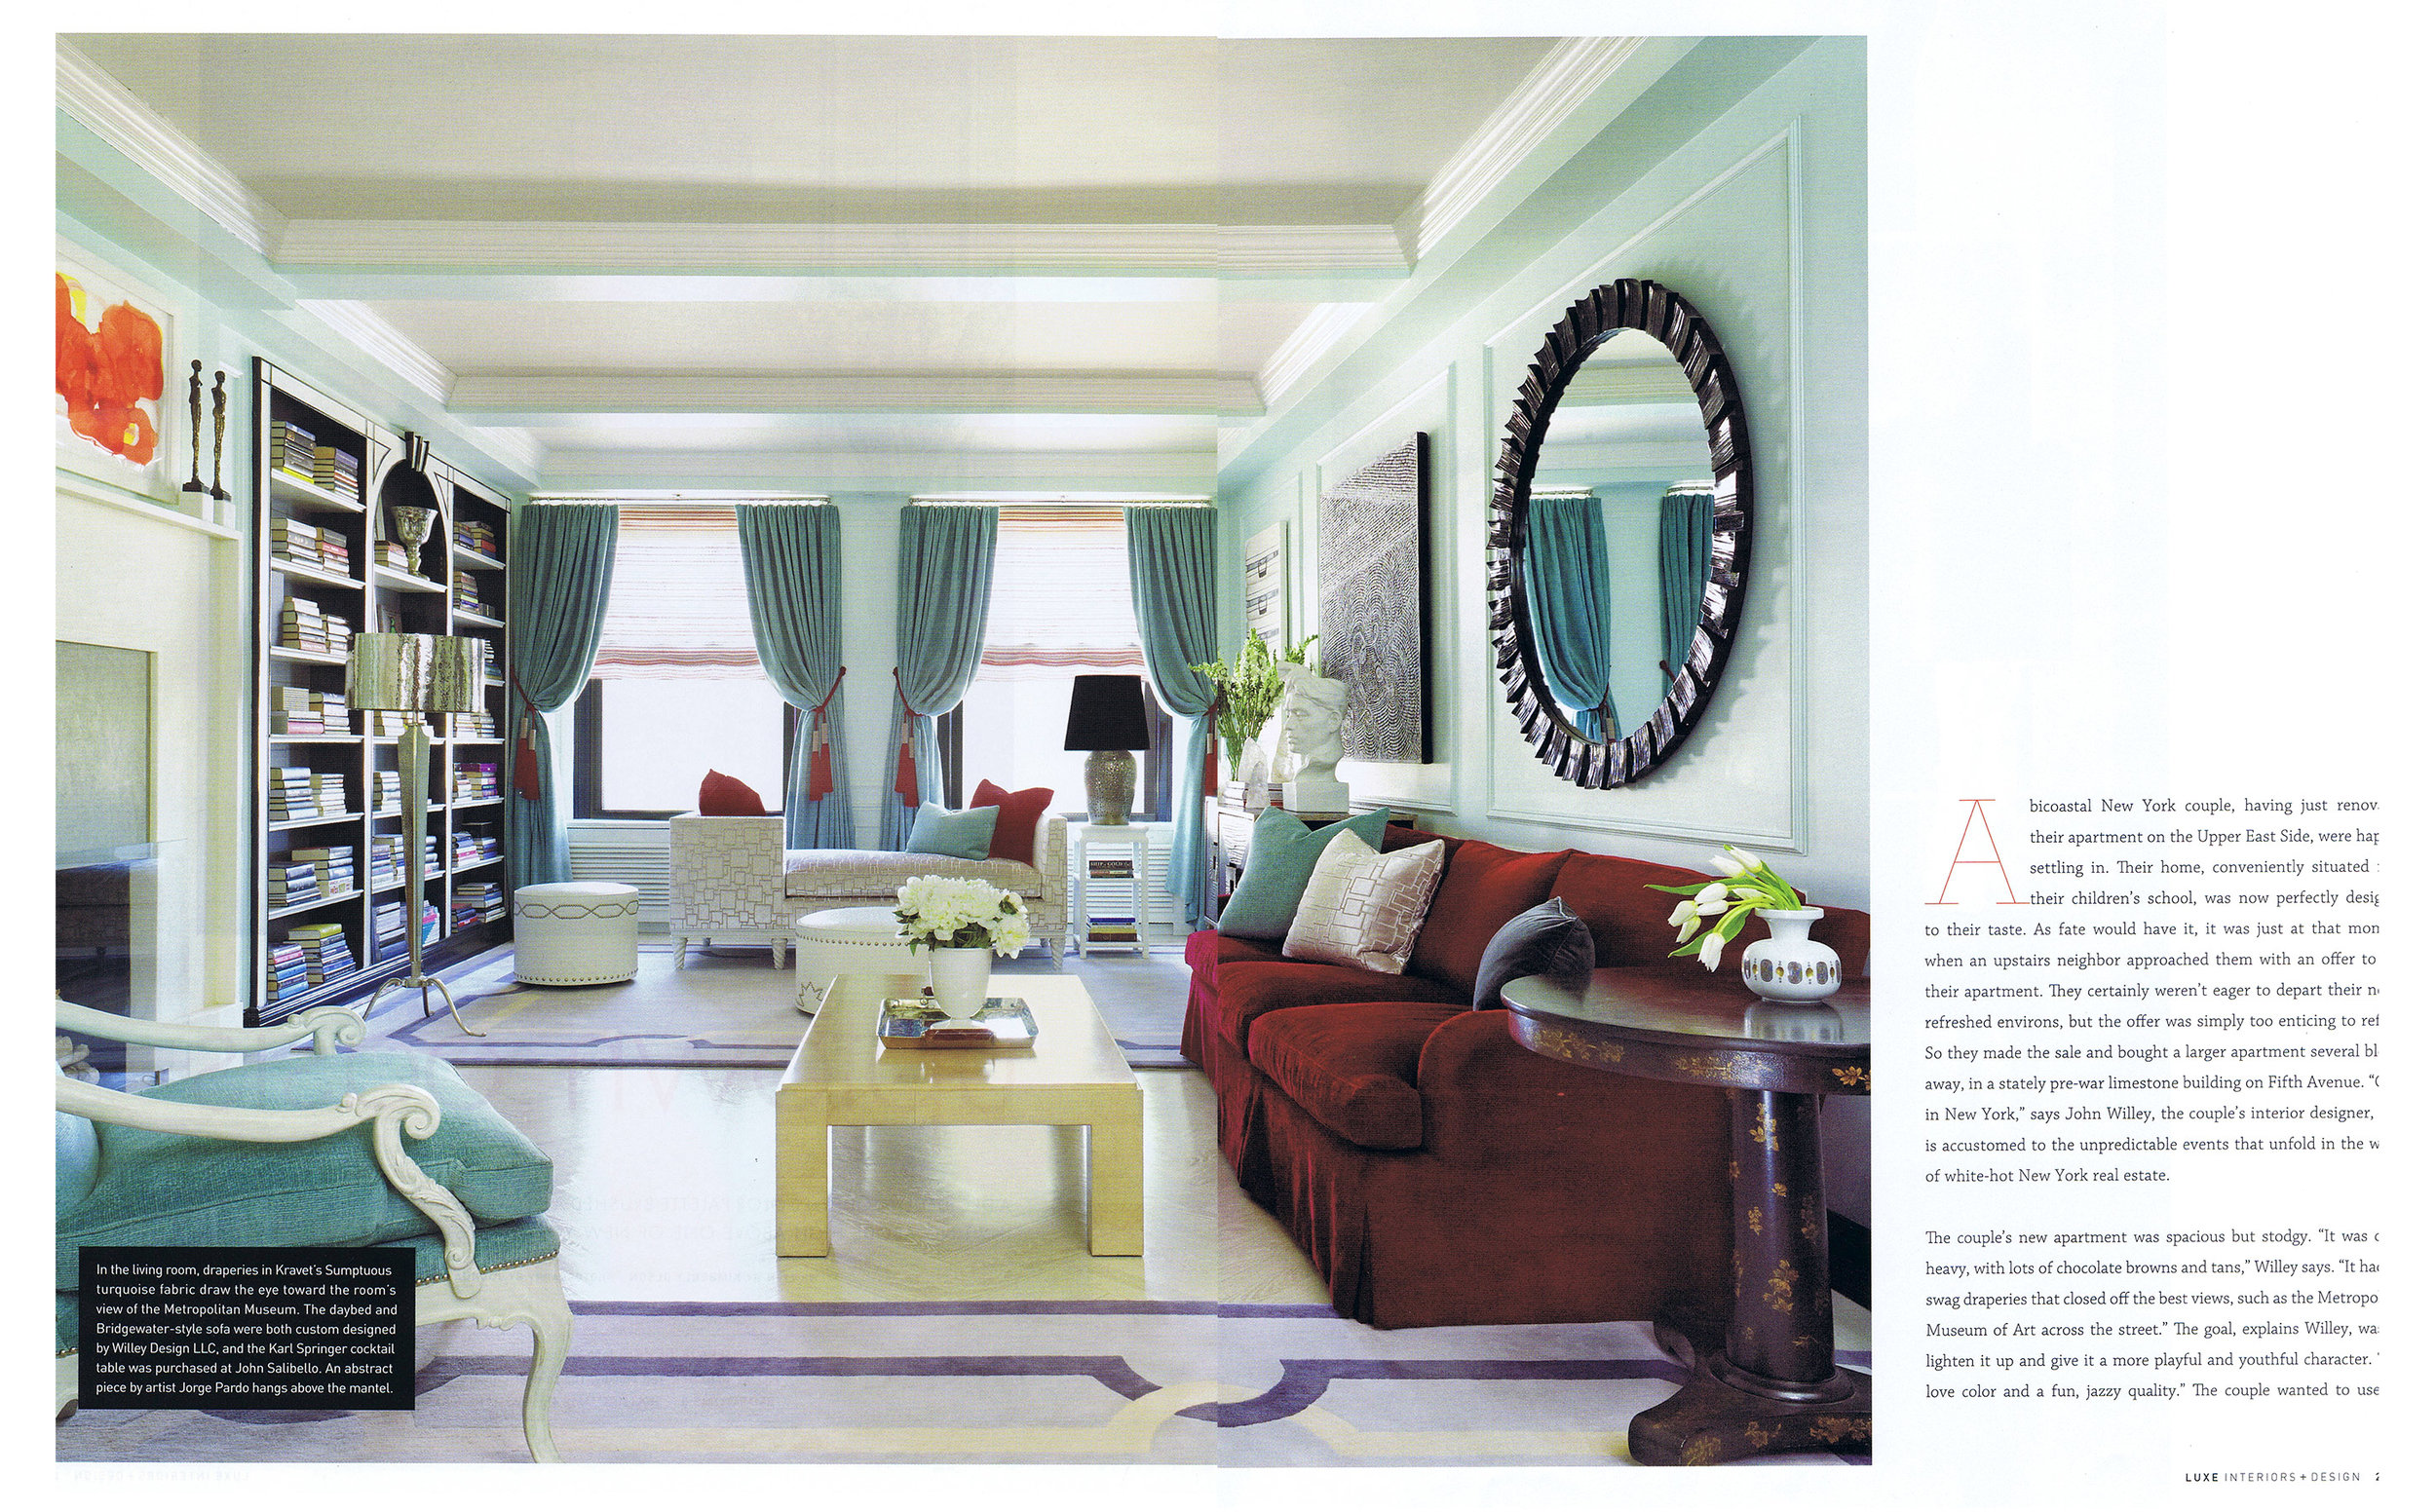 Luxe Interiors + Design 2013 Fall - Page 3 & 4.jpg